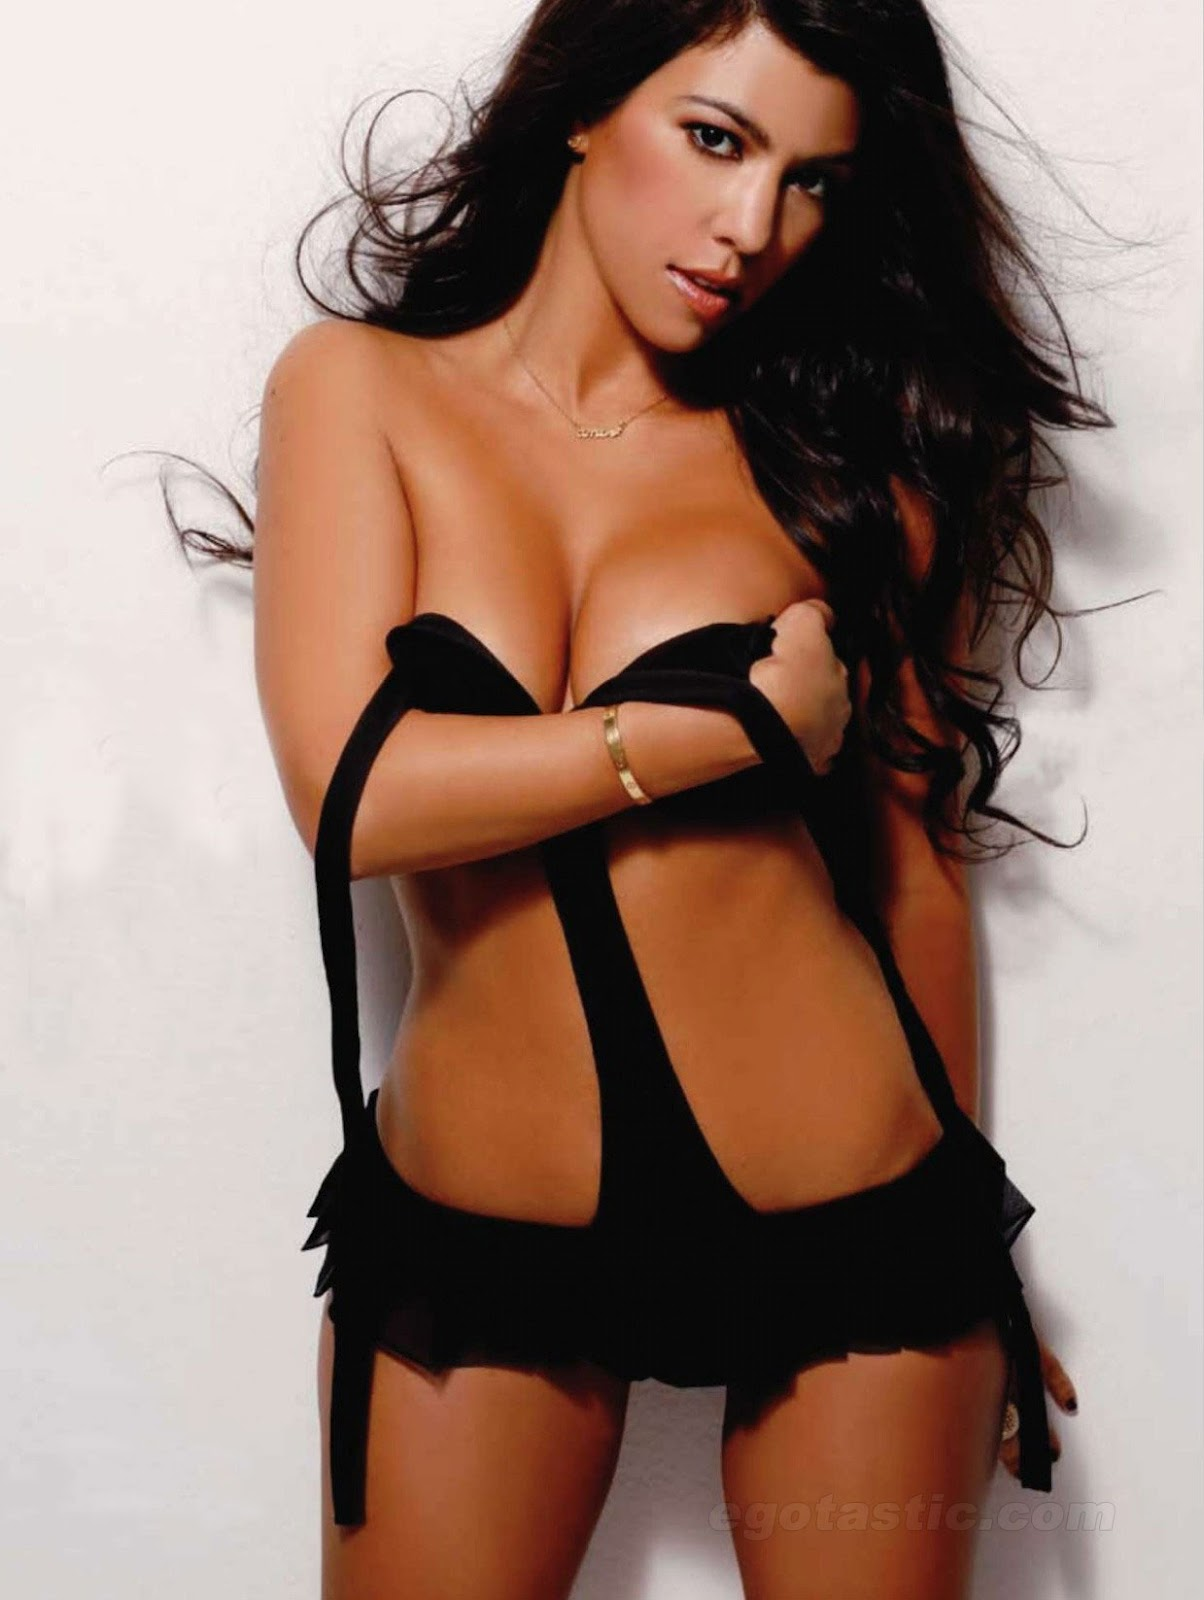 KOURTNEY KARDASHIAN HOLDING BOOBS MAXIM